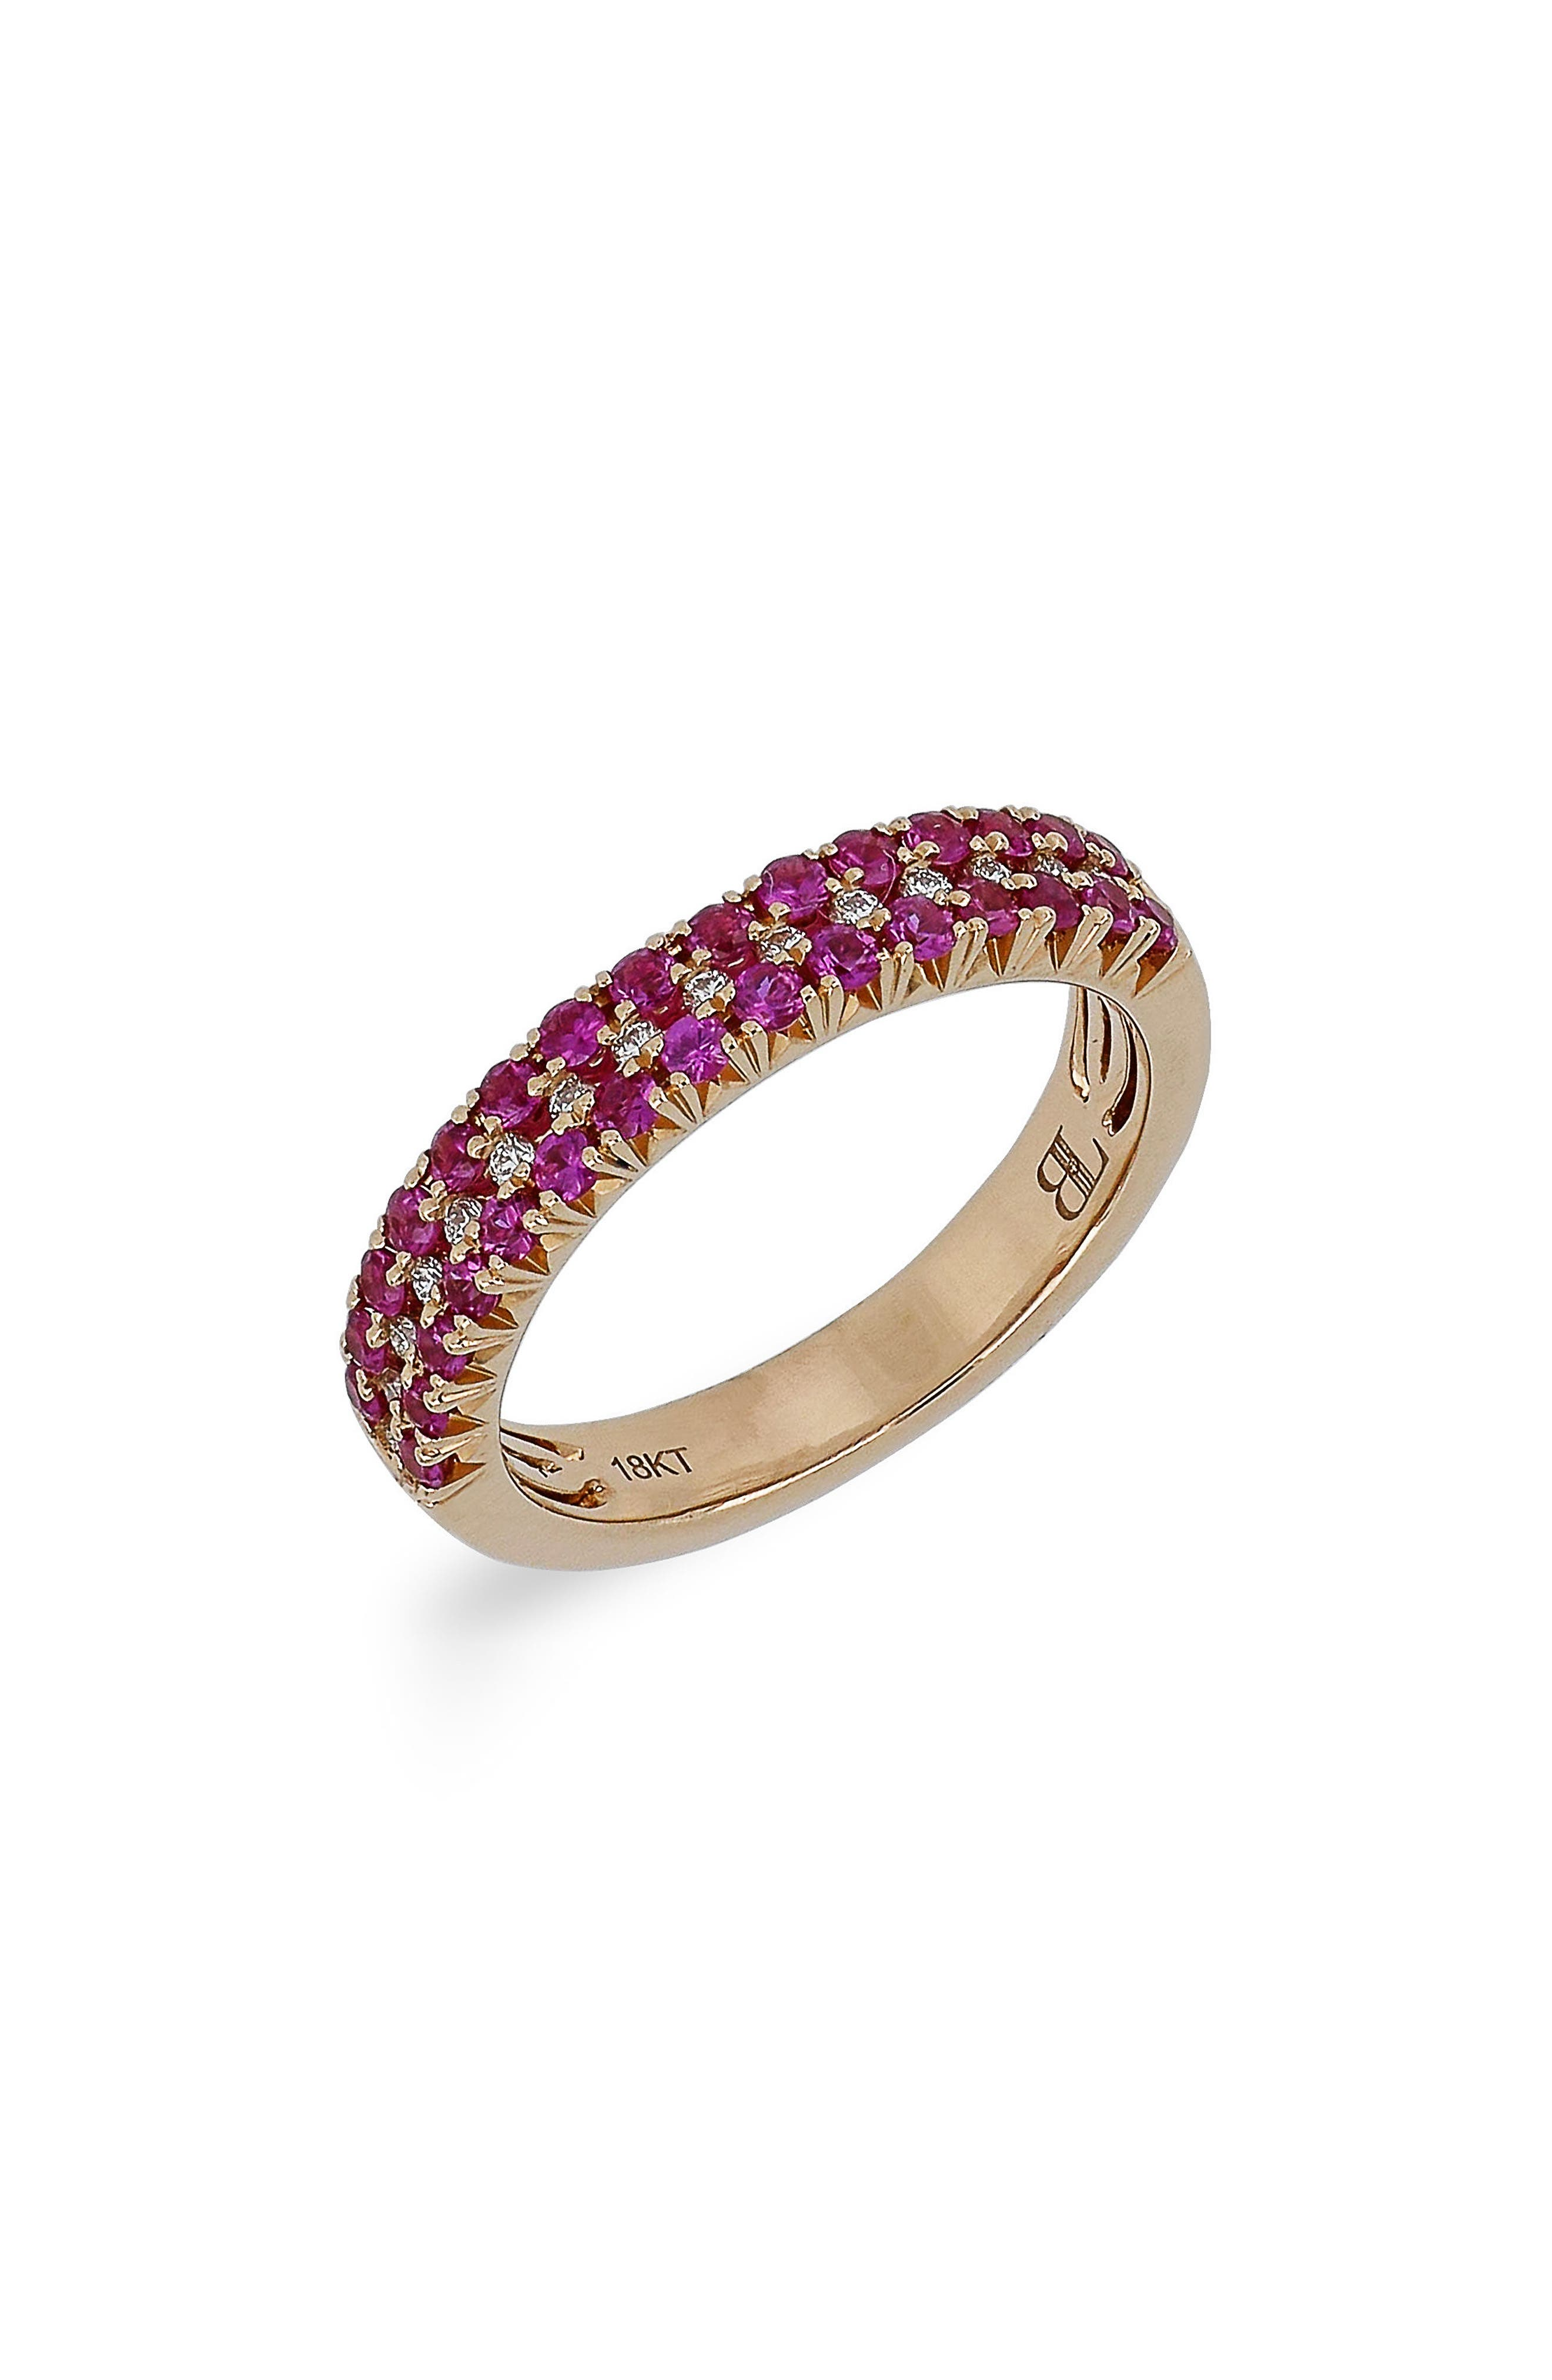 Ruby & Diamond Ring,                         Main,                         color, Rose Gold